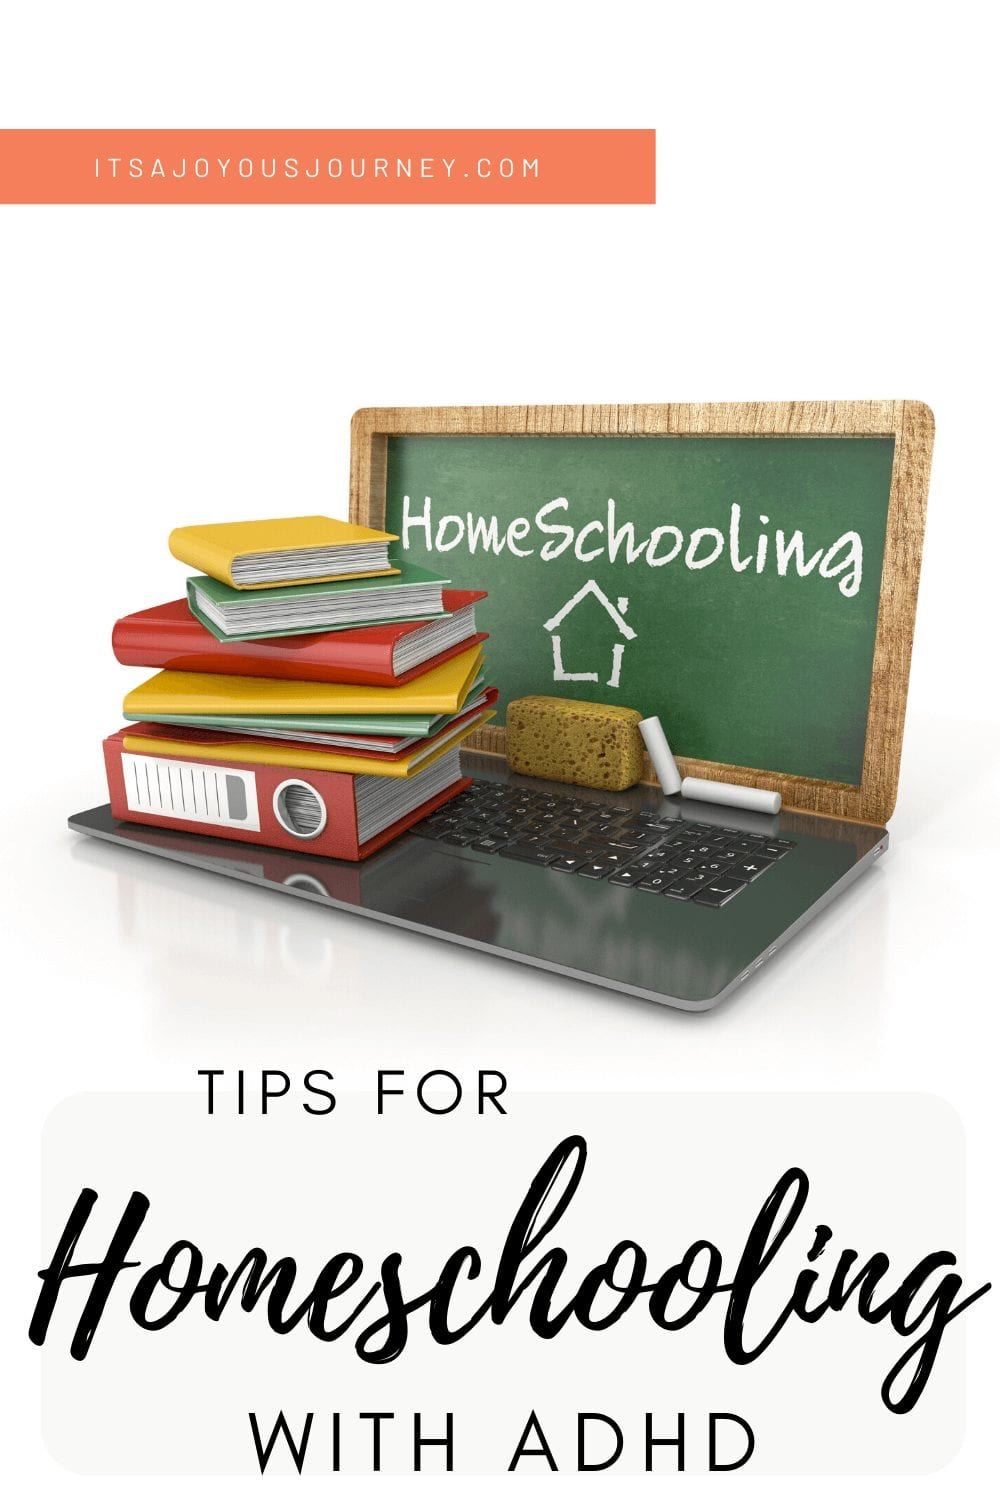 Tips-for-Homeschooling-with-ADHD